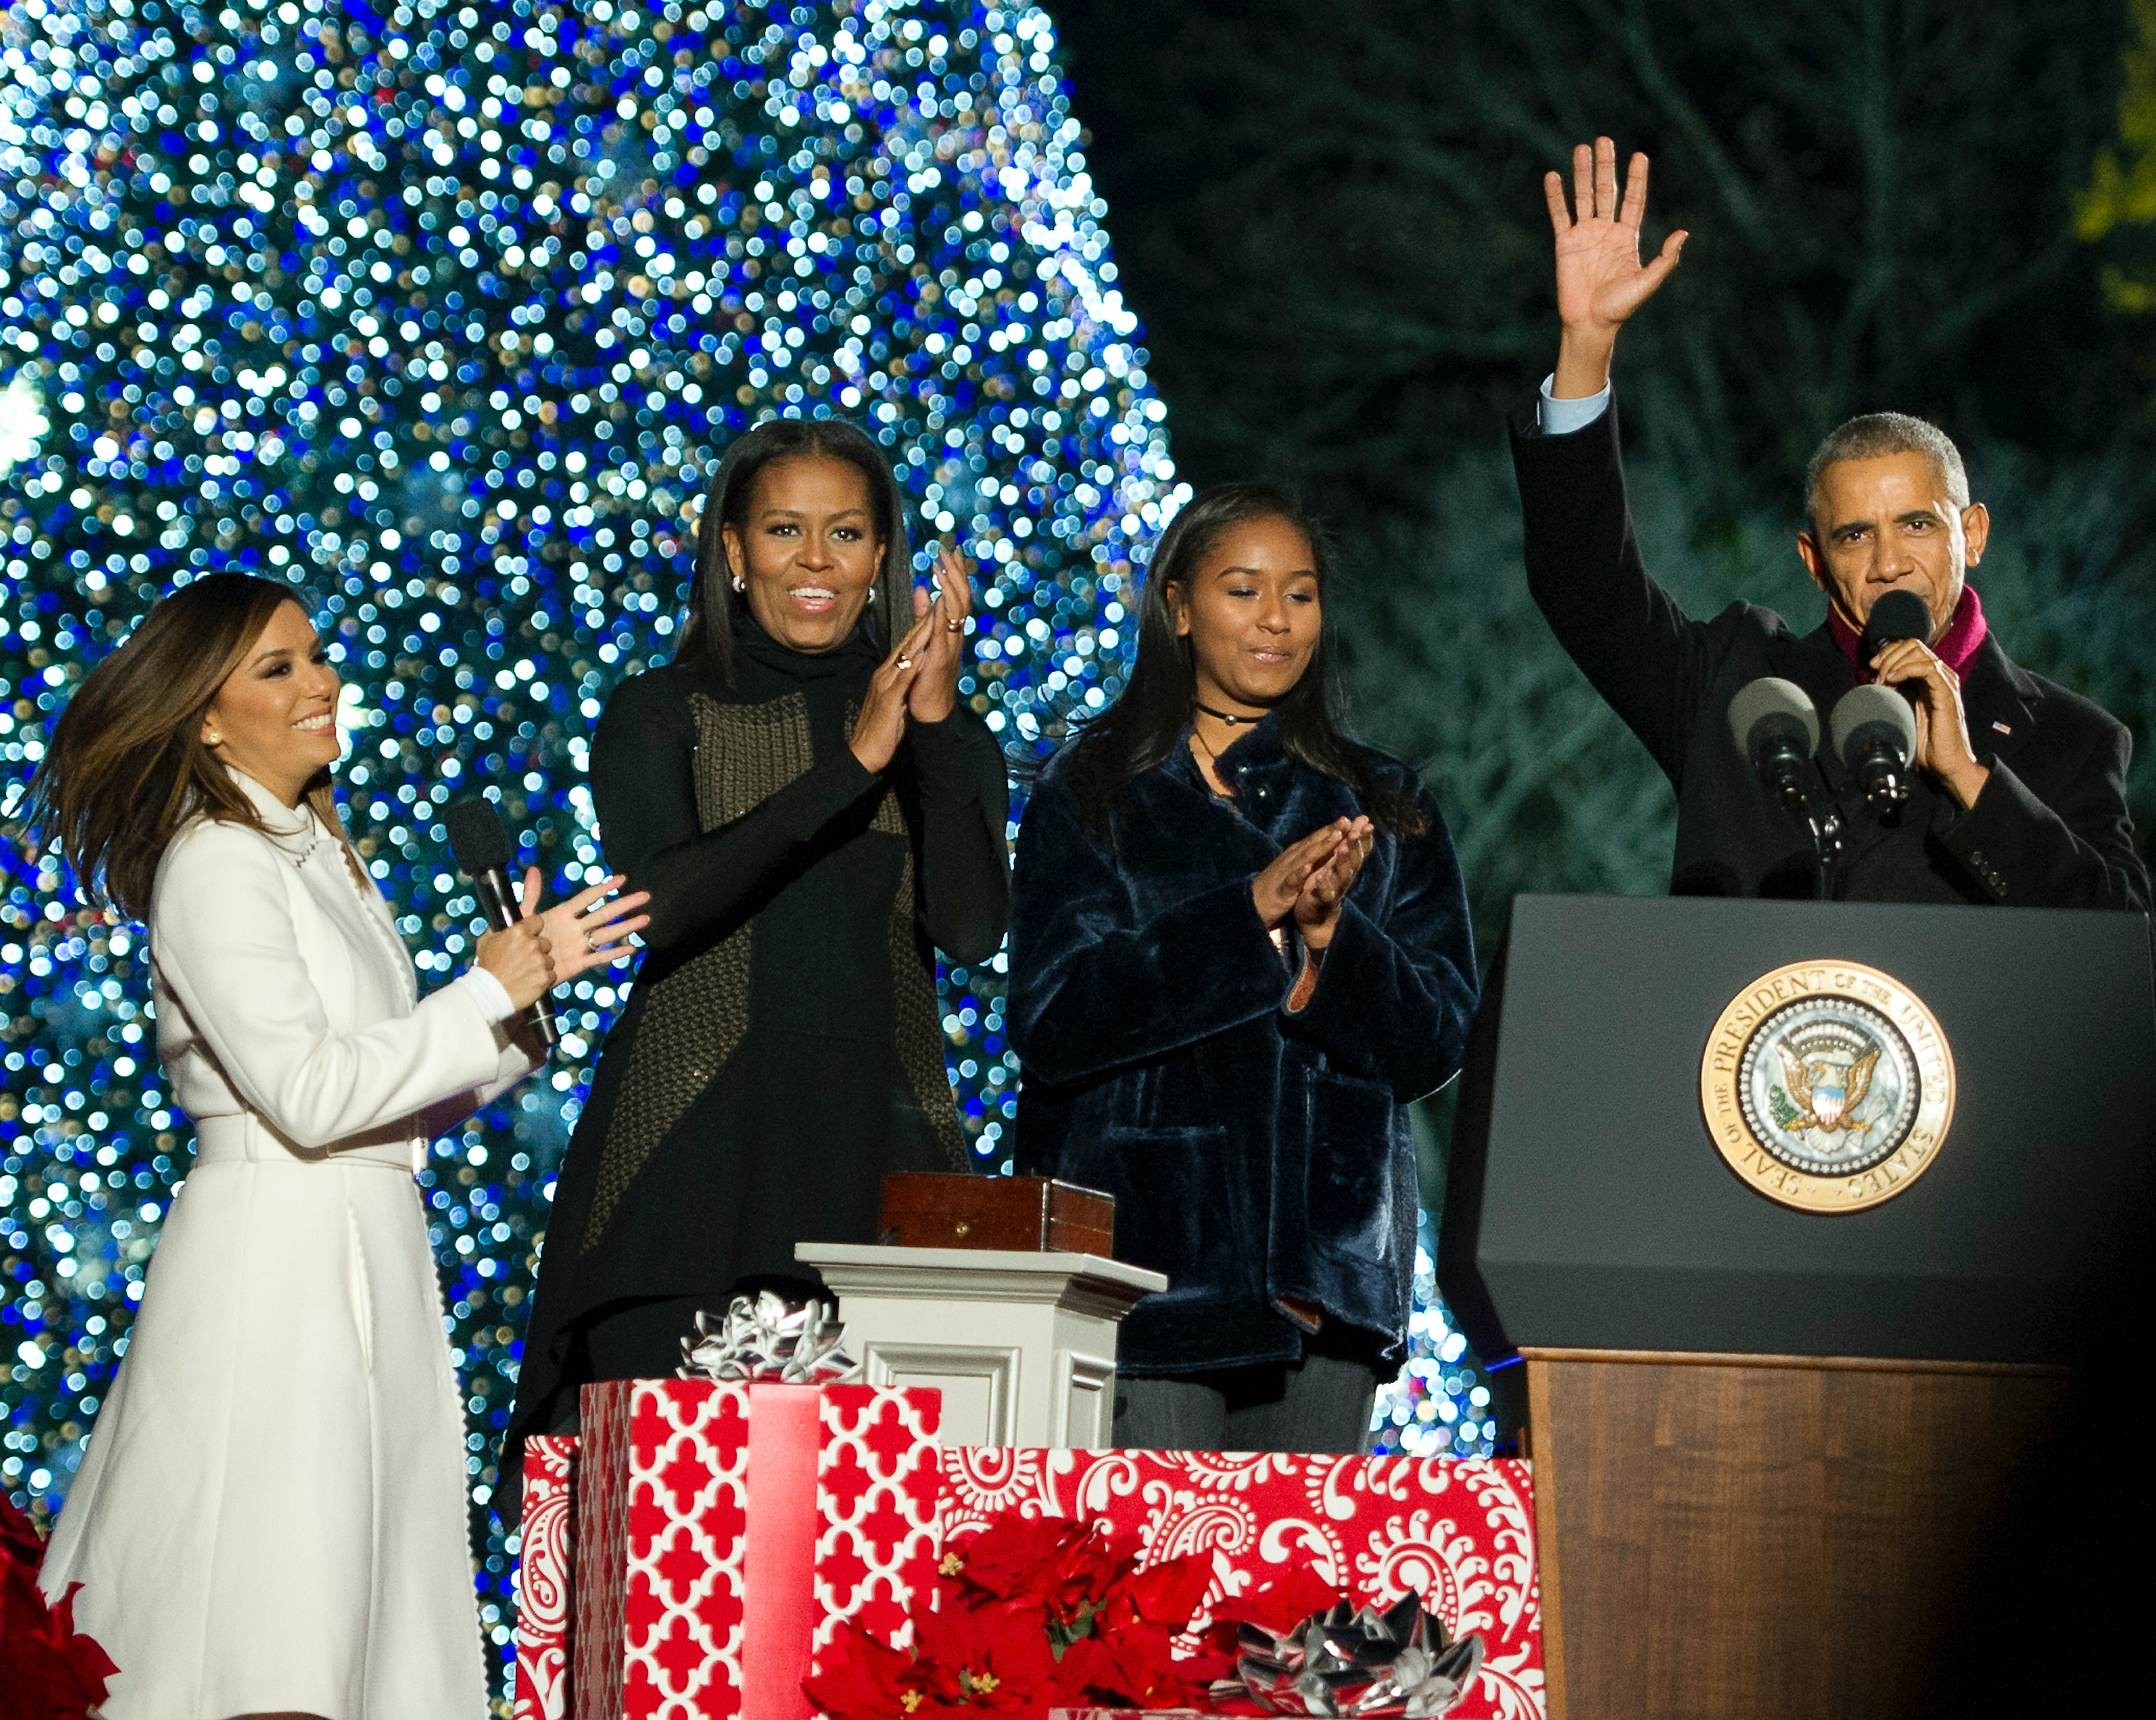 Inside tour: First lady decorates White House for Christmas